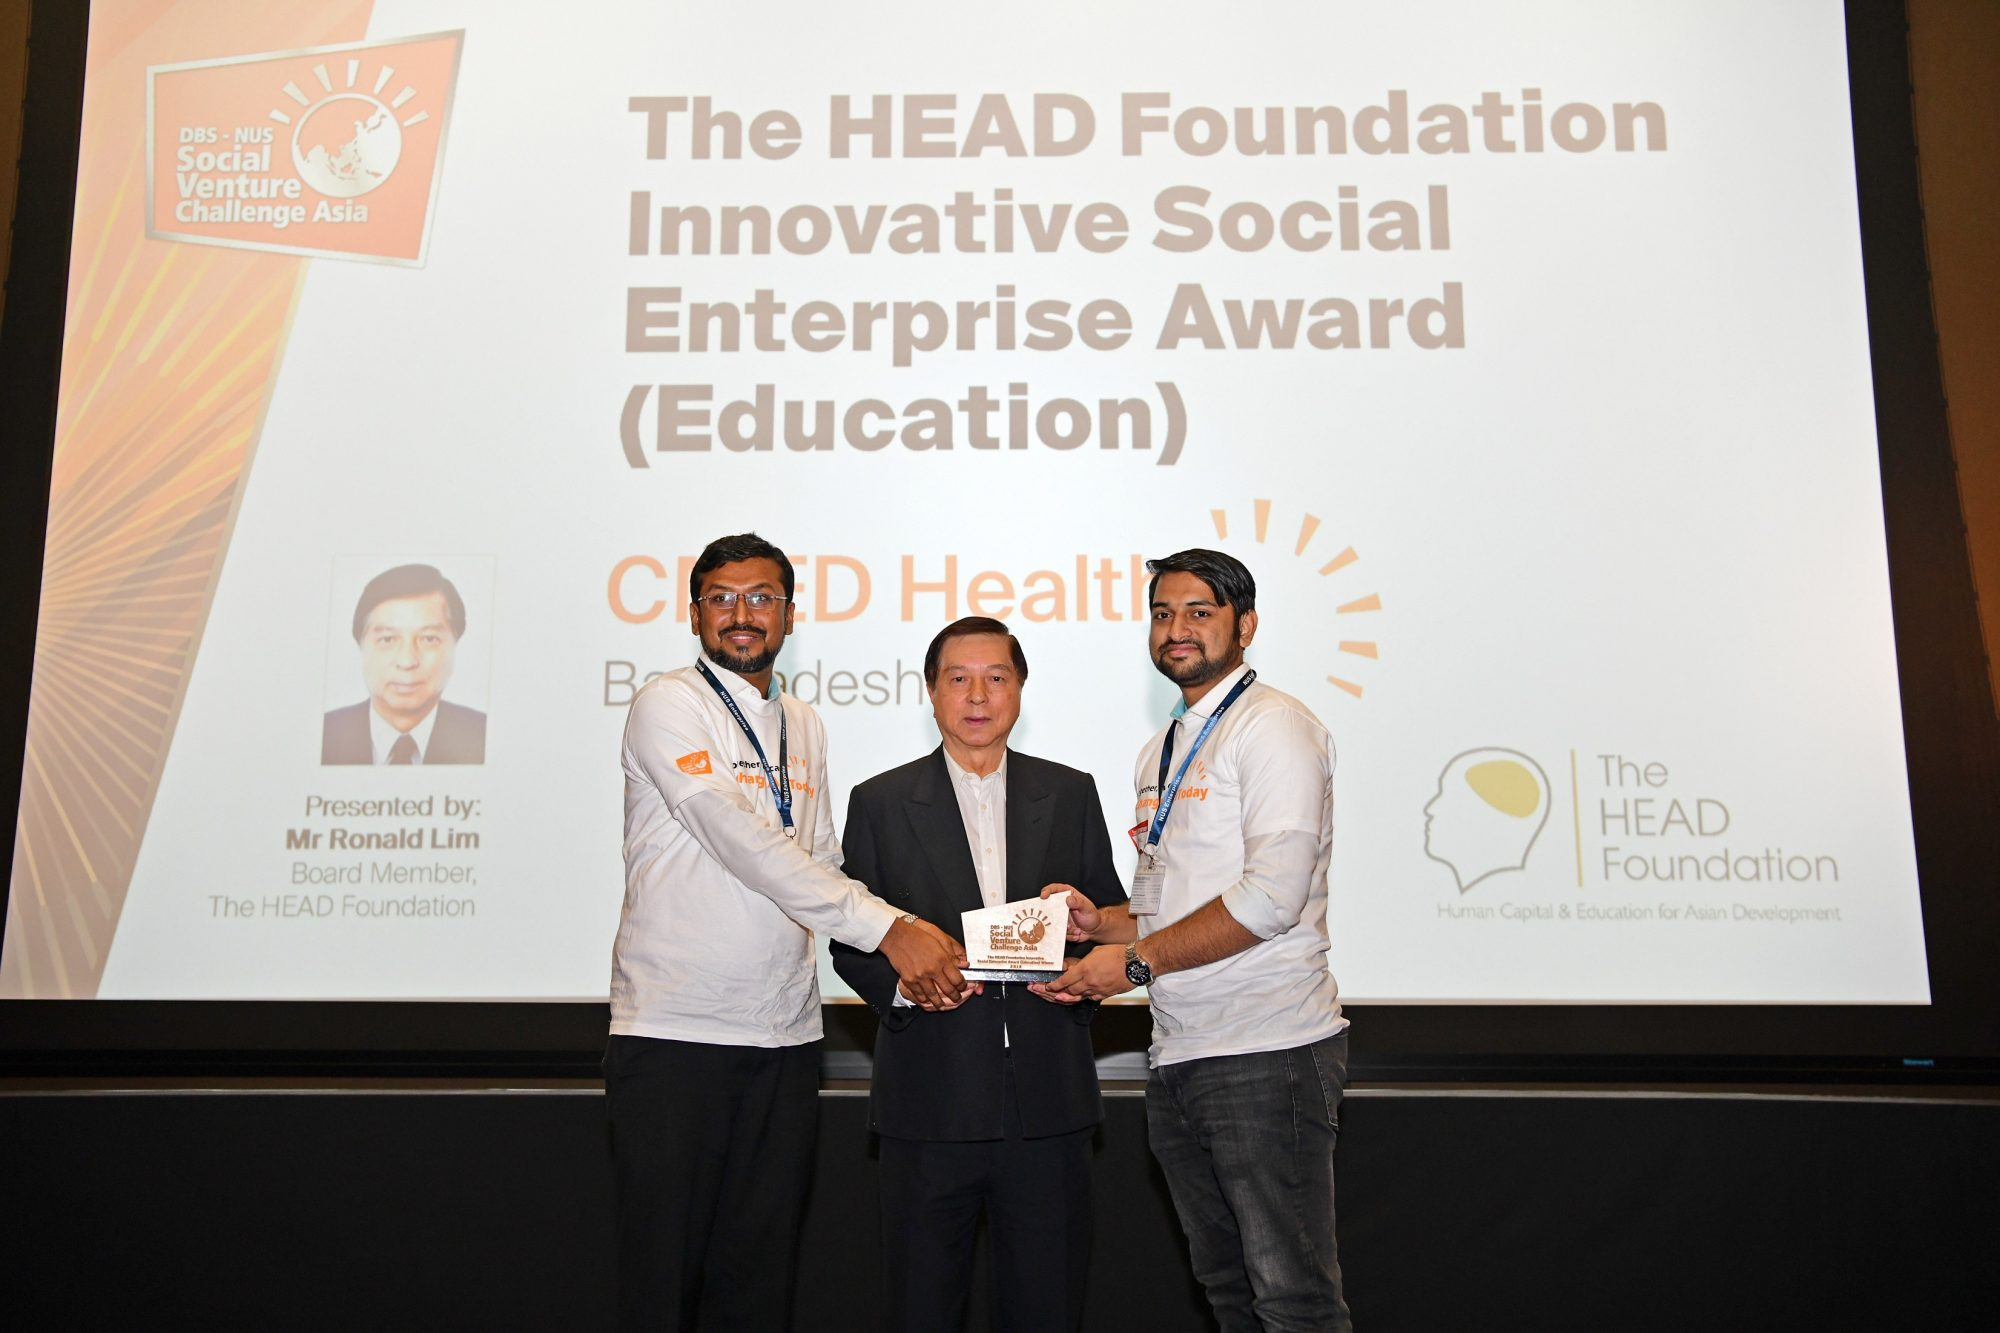 CMED Health – Prize Giving – Mr Lim 2